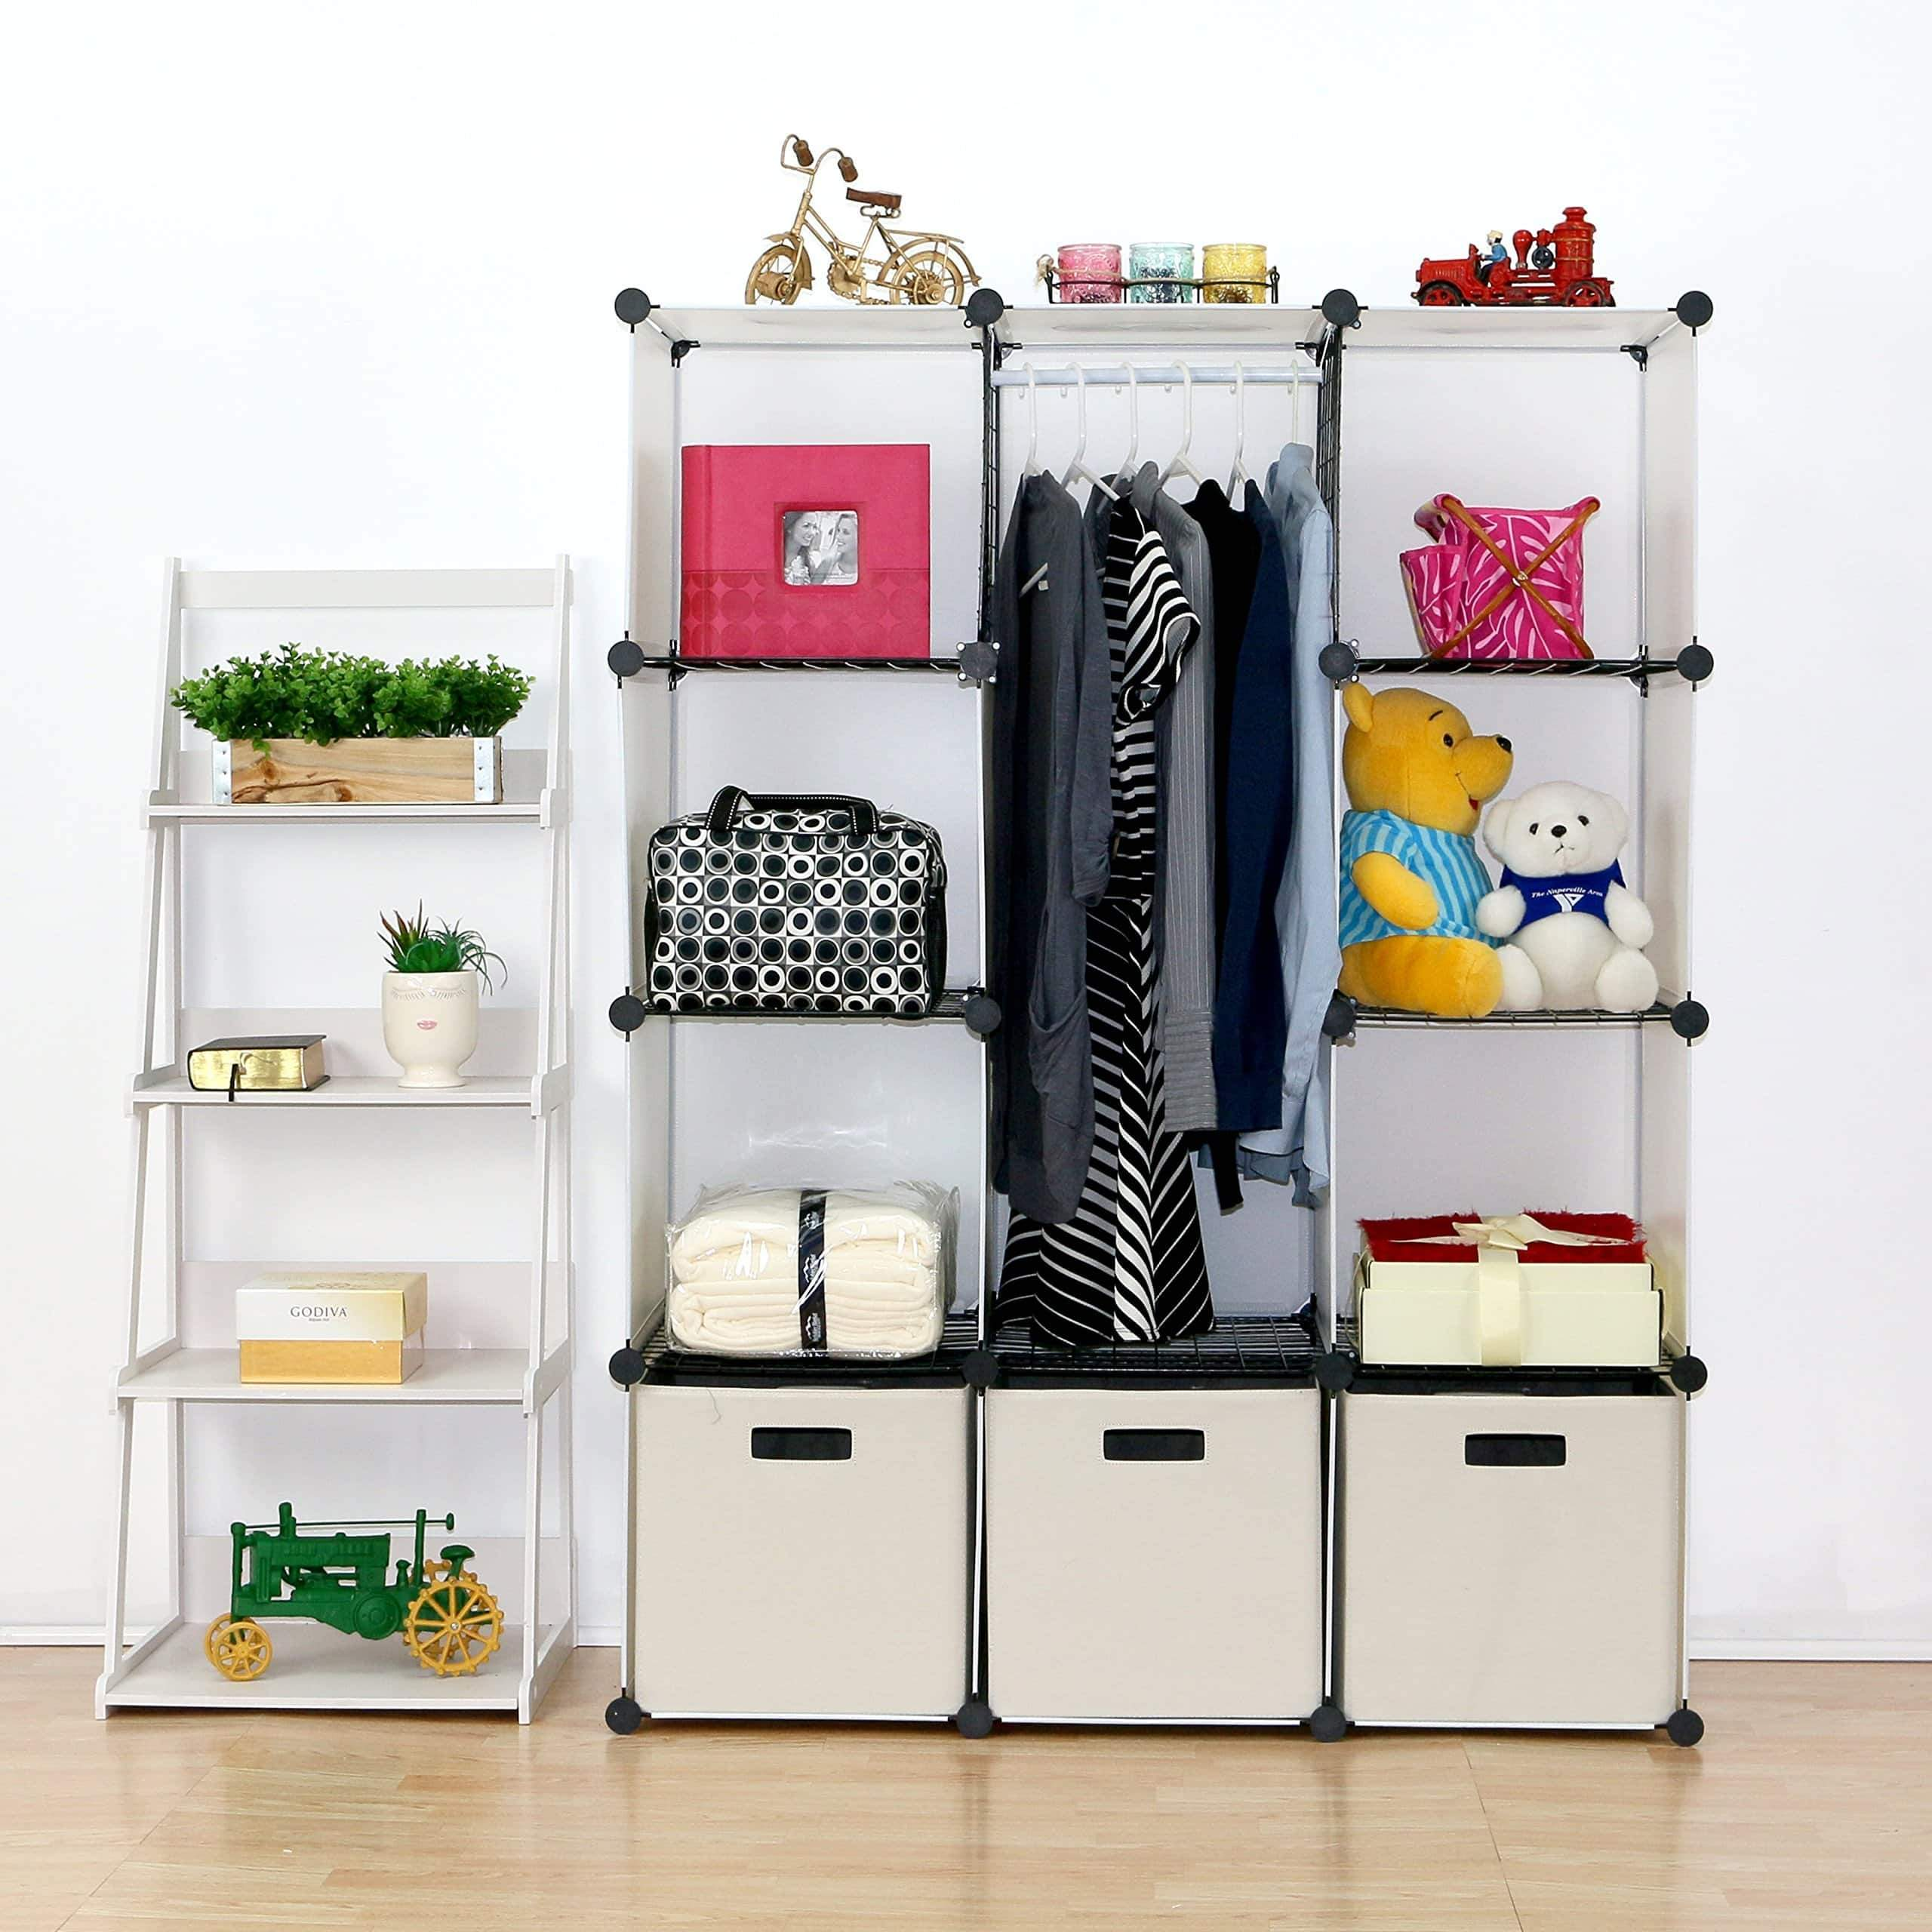 Selection unicoo multi use diy plastic 12 cube organizer toy organizer bookcase storage cabinet wardrobe closet white with door sticker deeper cube white